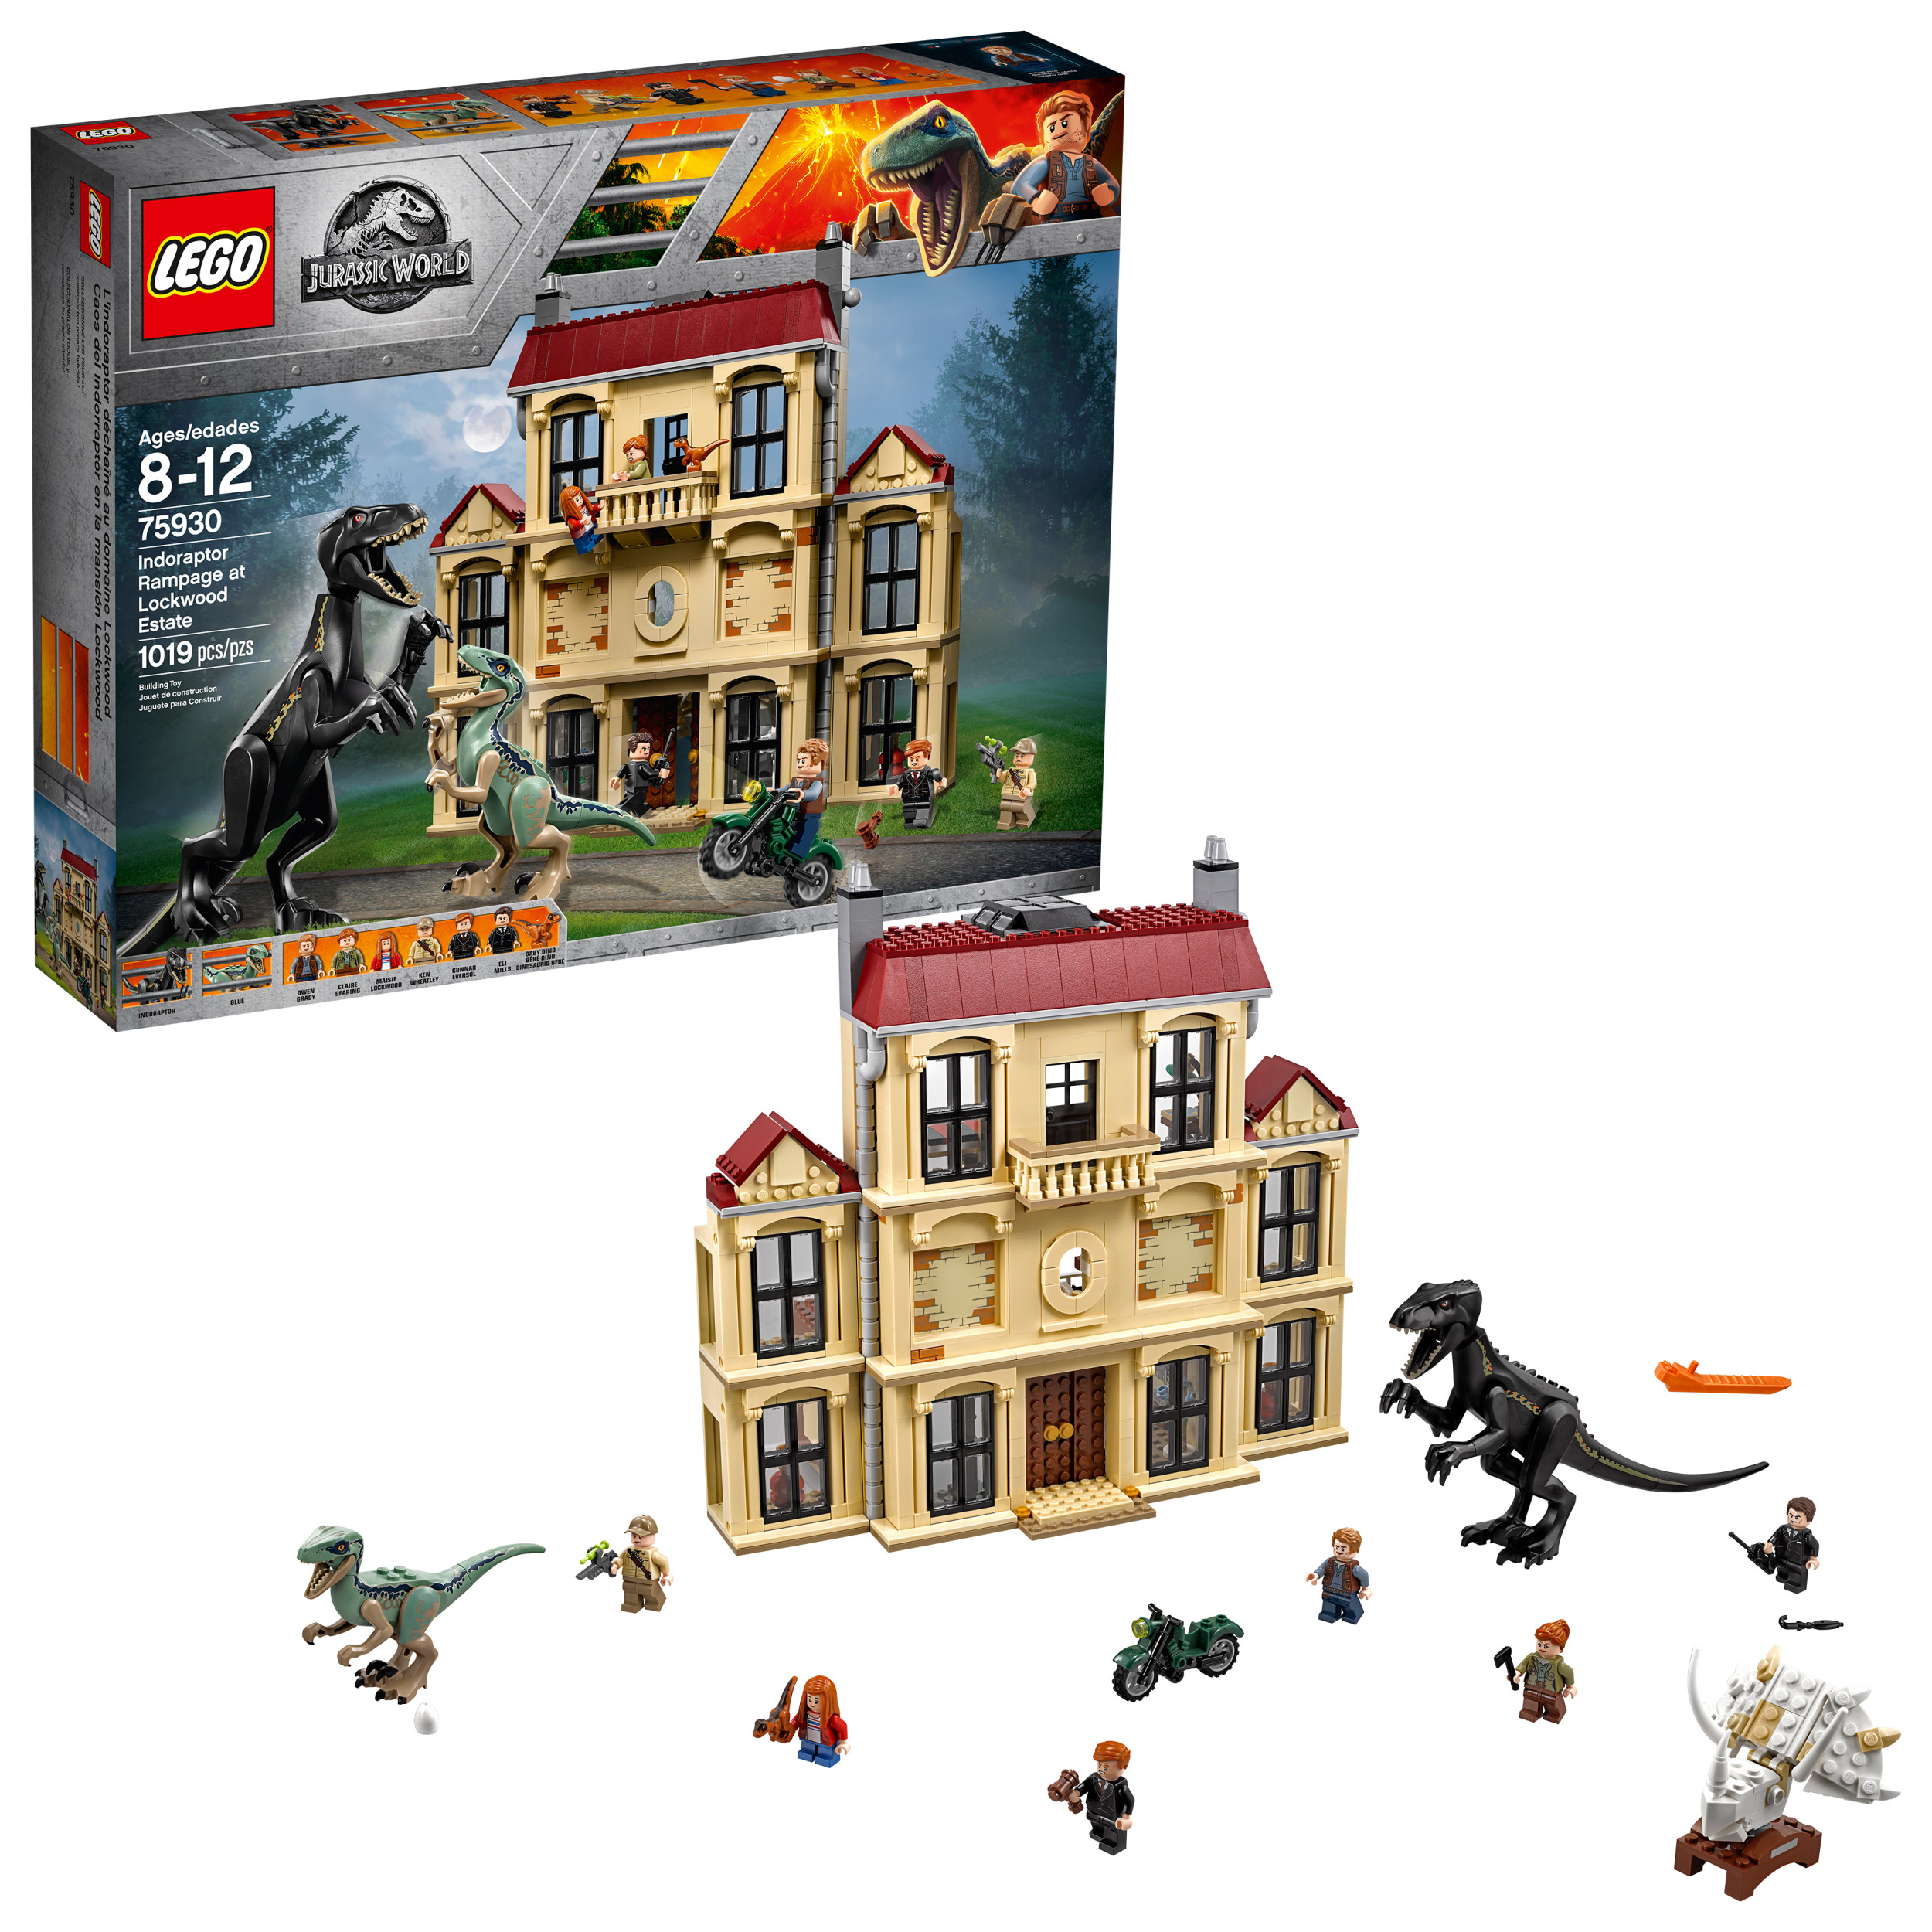 Lego Jurassic World Indoraptor Rampage at Lockwood Estate 75930 by LEGO System Inc